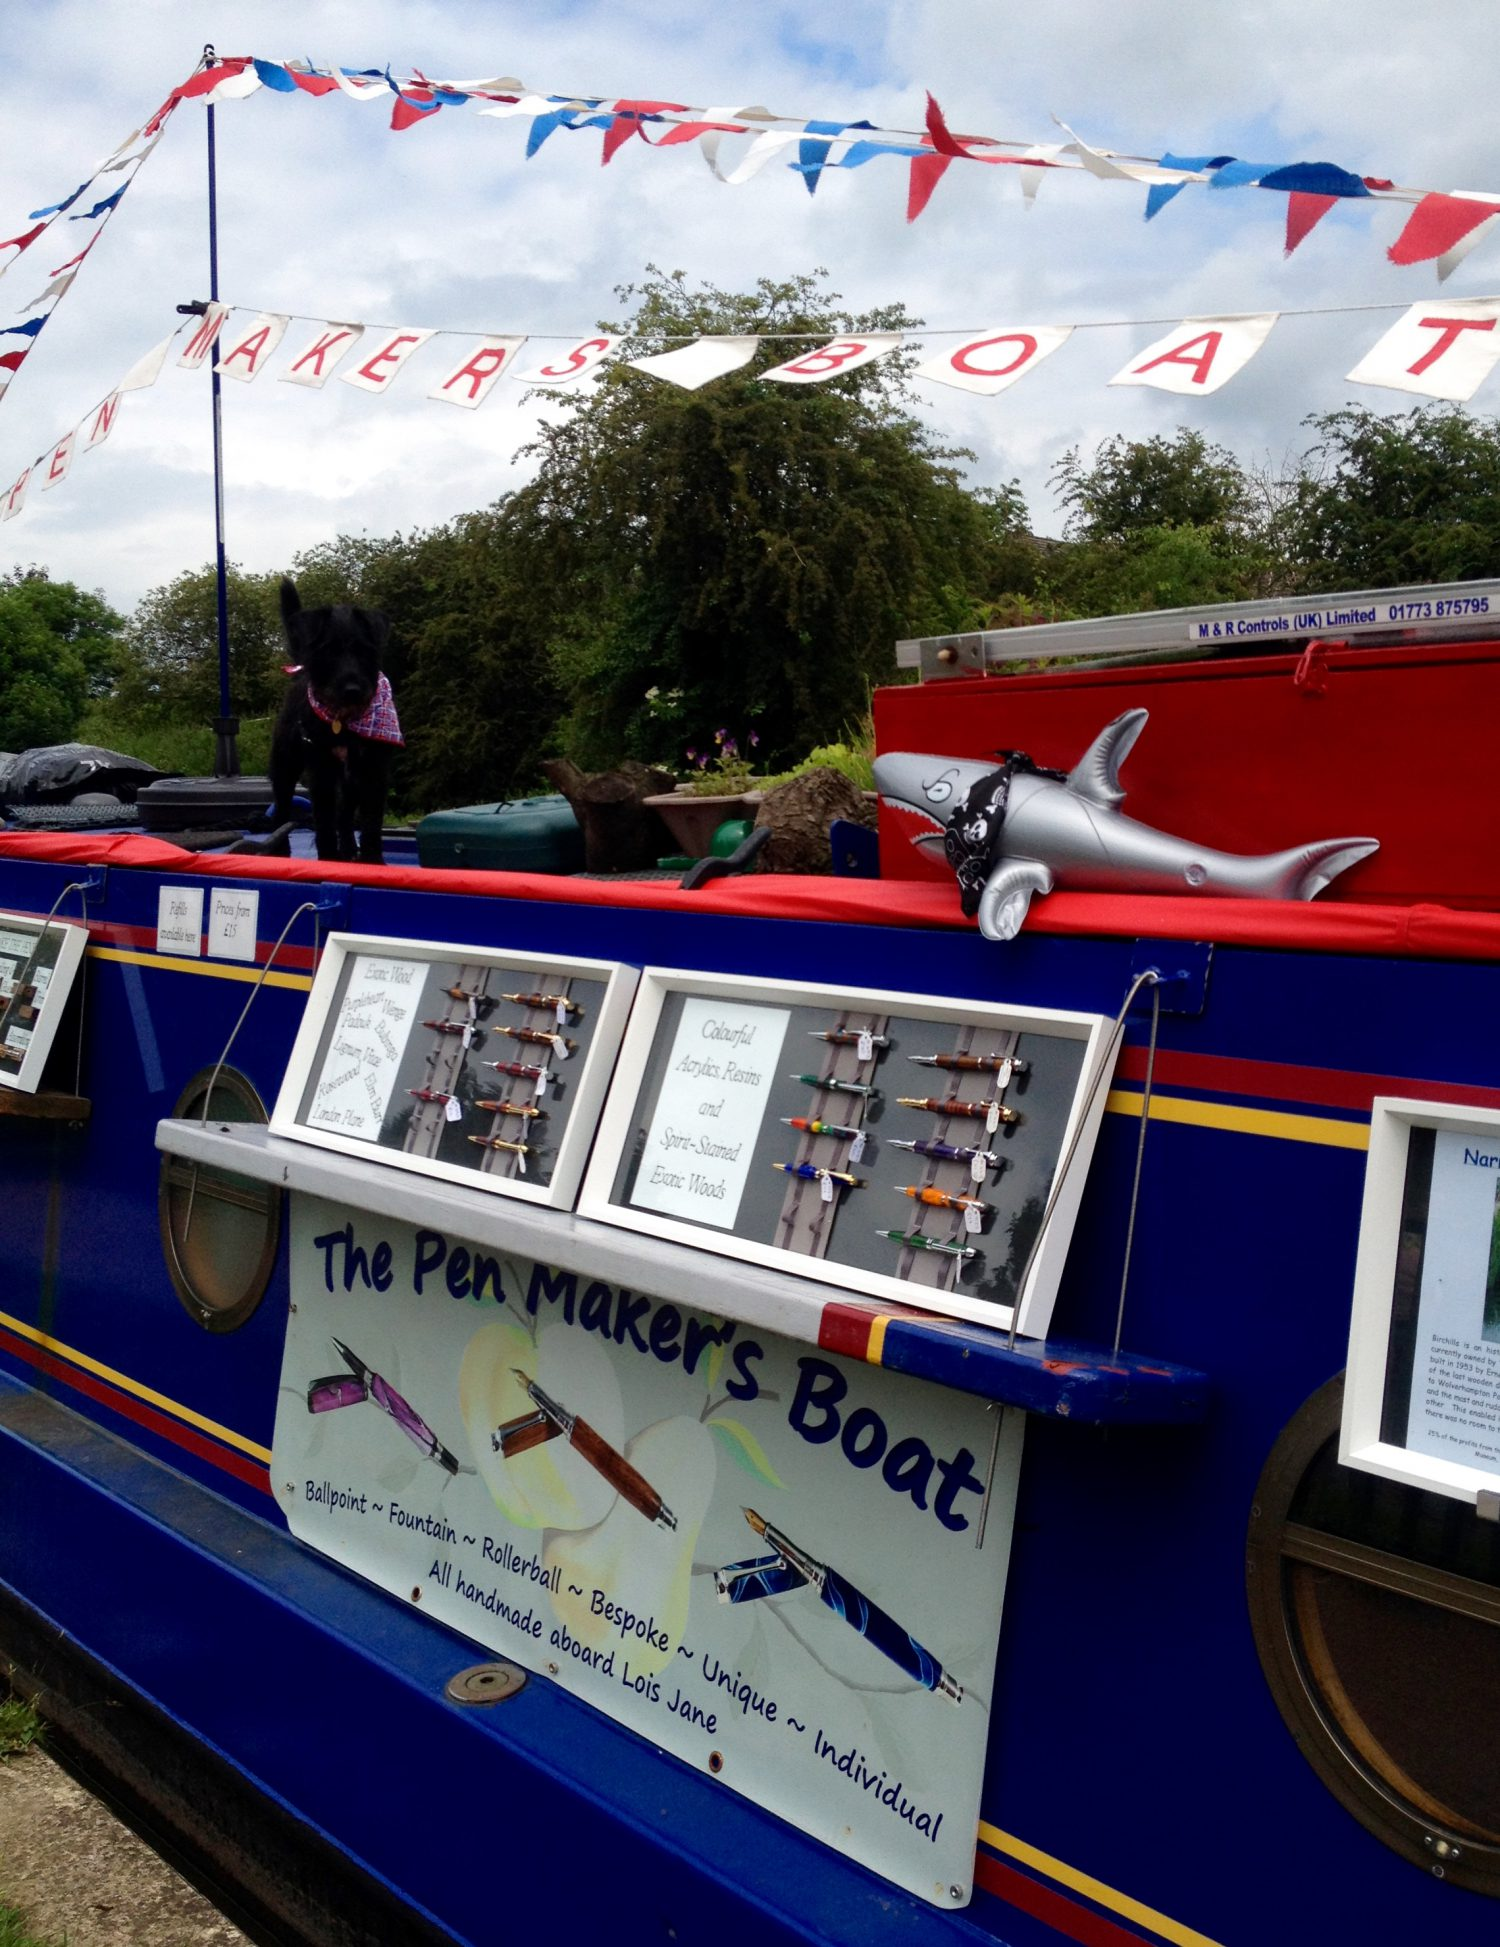 The Pen Makers Boat